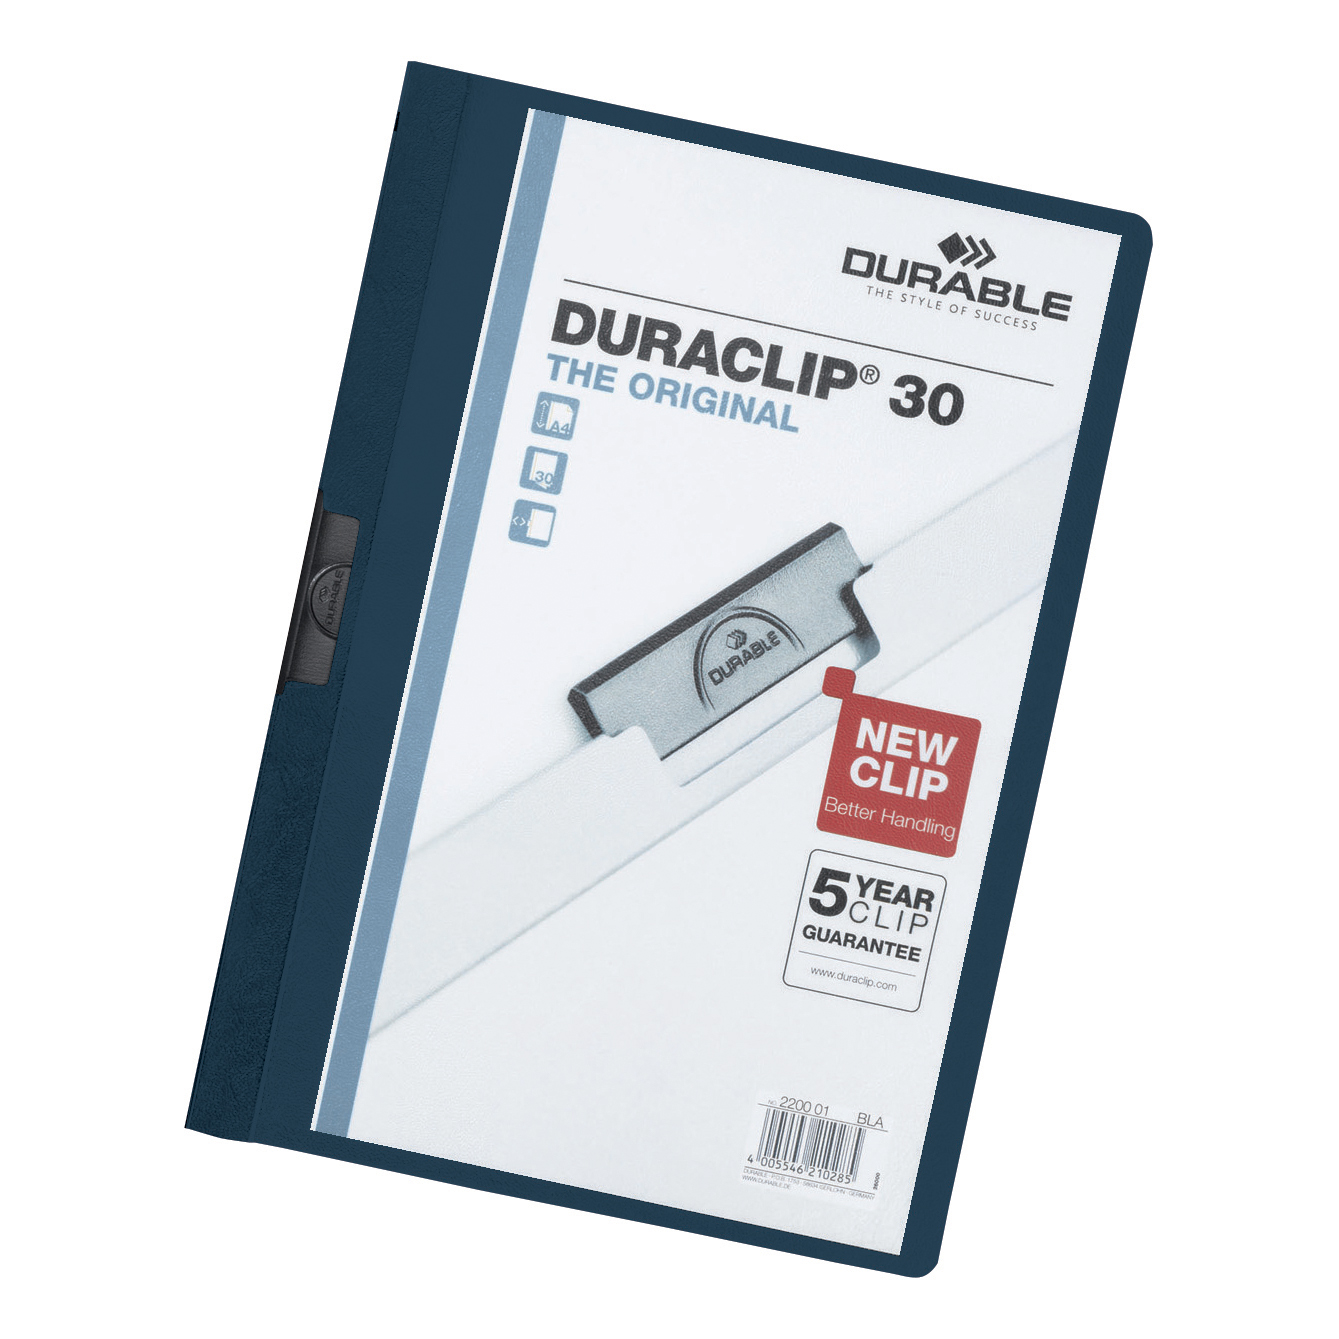 Durable Duraclip Folder PVC Clear Front 3mm Spine for 30 Sheets A4 Dark Blue Ref 2200/28 Pack 25